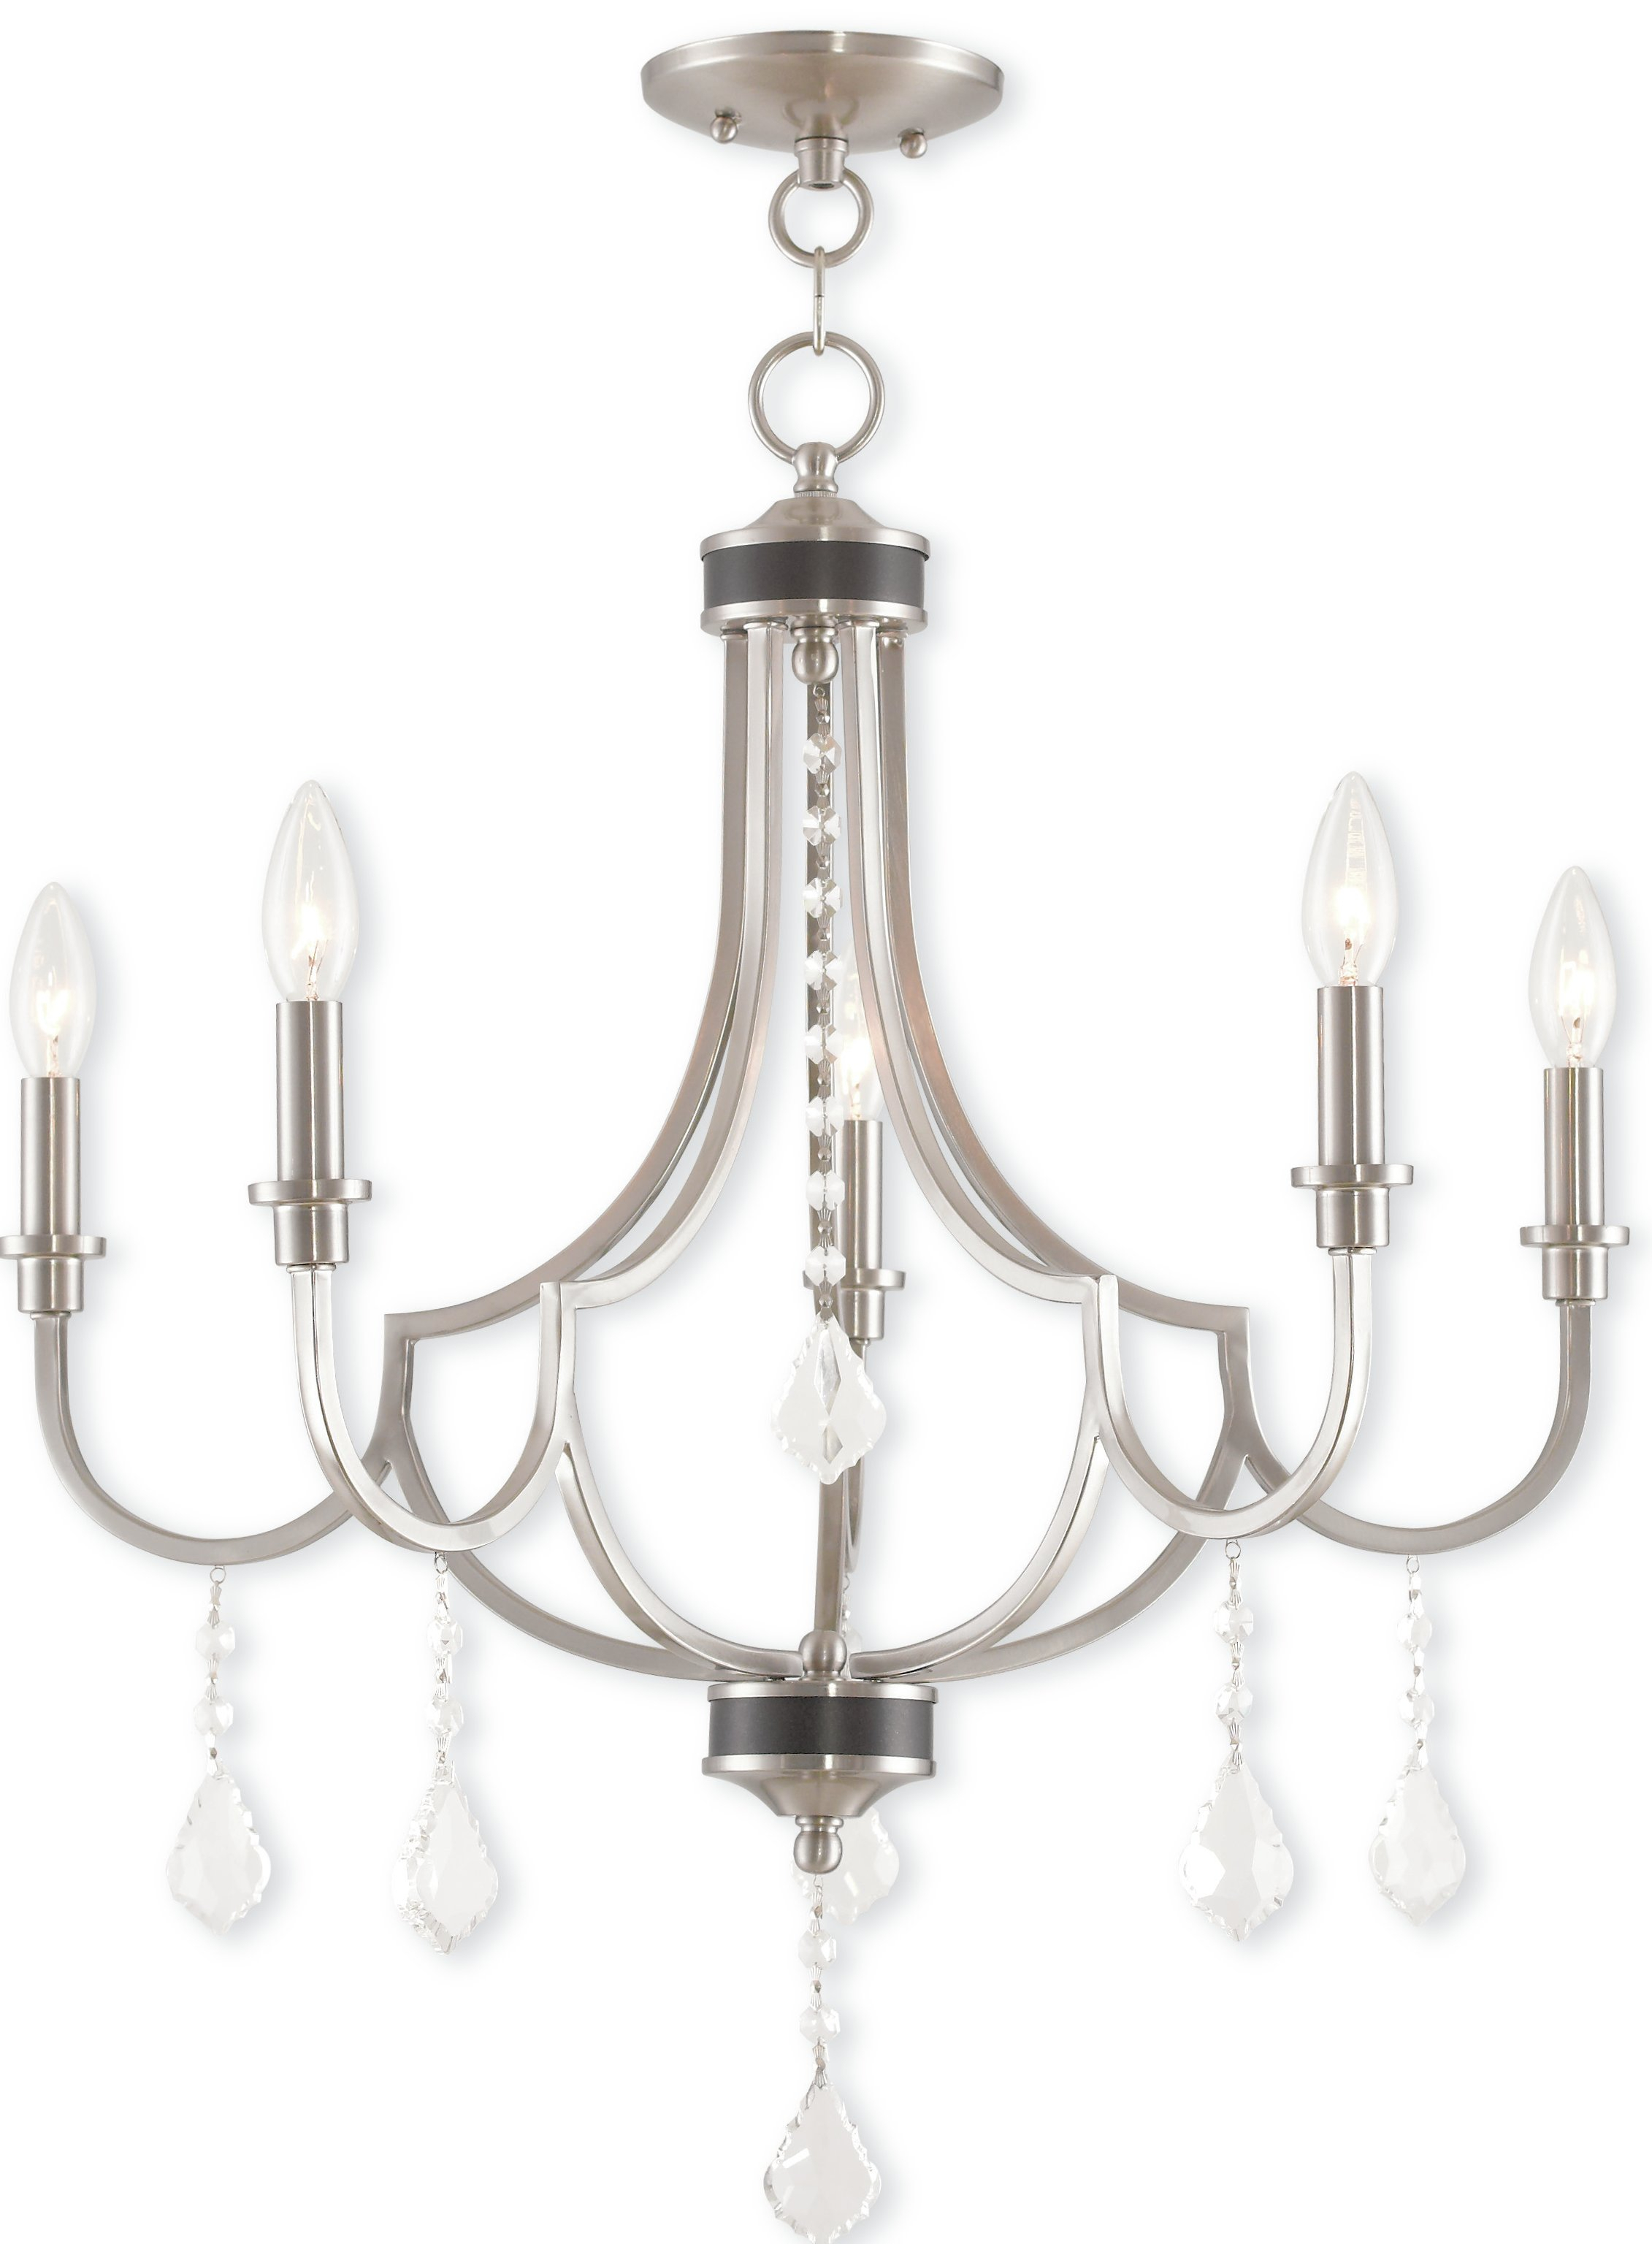 Crayford 5 Light Candle Style Chandelier For Florentina 5 Light Candle Style Chandeliers (View 8 of 30)